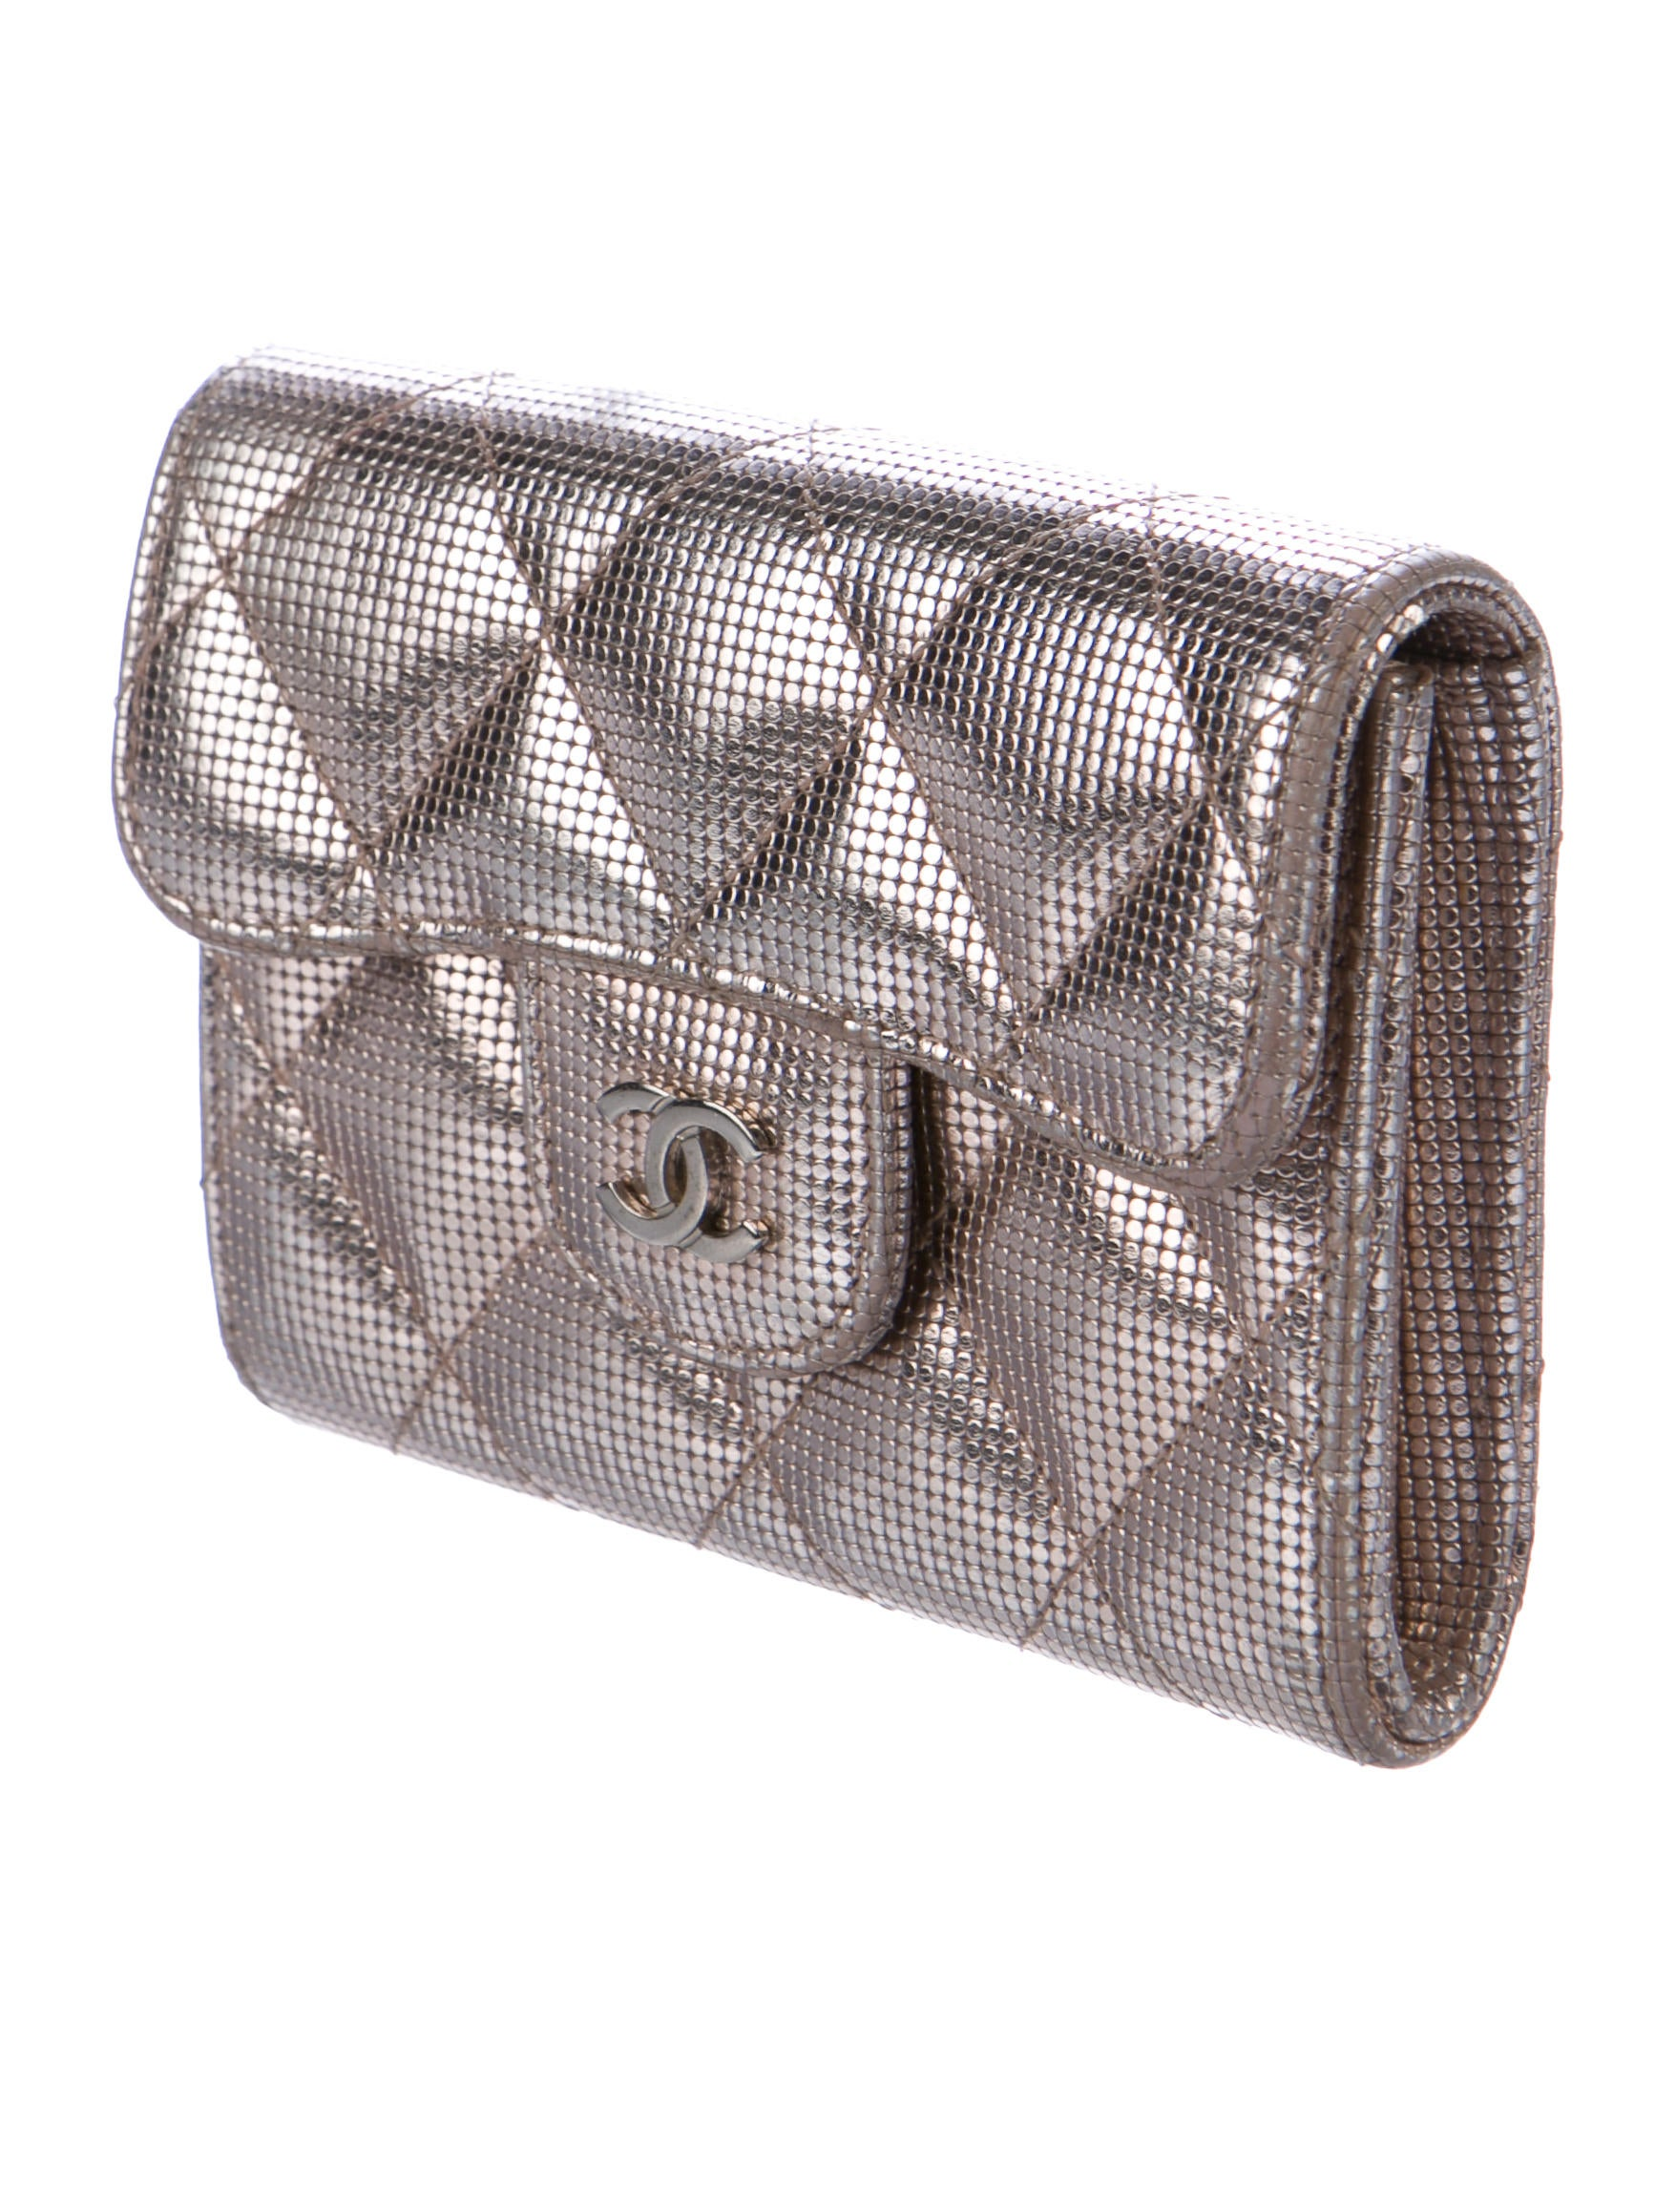 Chanel Metallic Business Cardholder - Accessories - CHA235326 ...